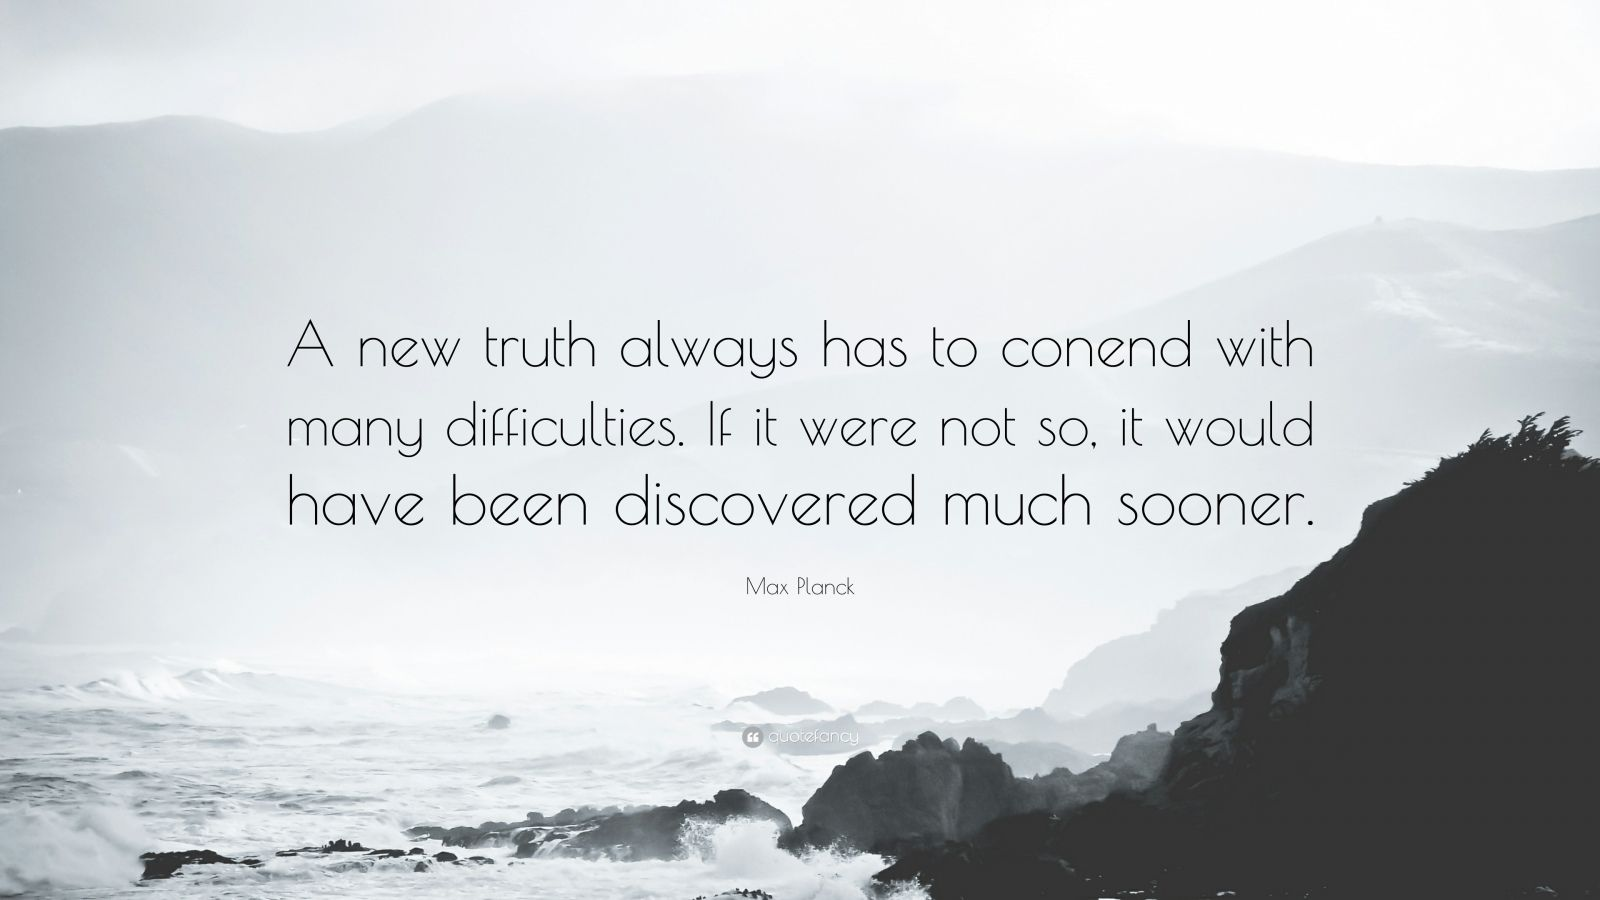 The truth always comes out quote truth always comes out in the end it - Max Planck Quote A New Truth Always Has To Conend With Many Difficulties